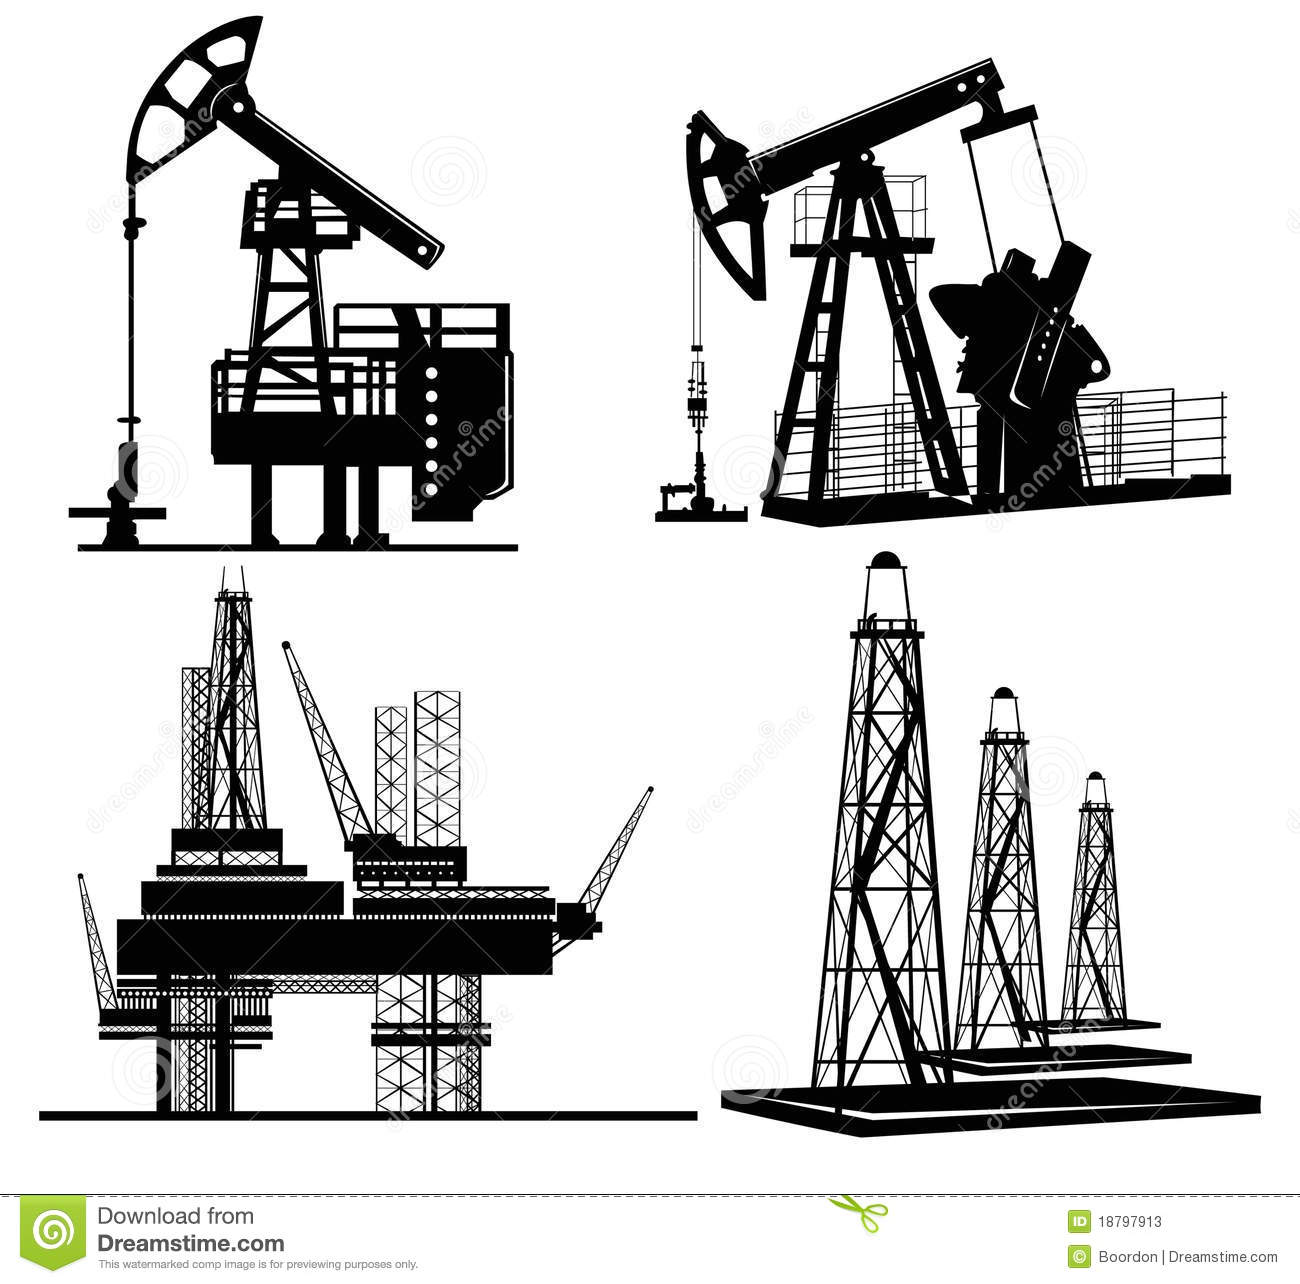 Oil silhouette hand drawn stock vector. Illustration of